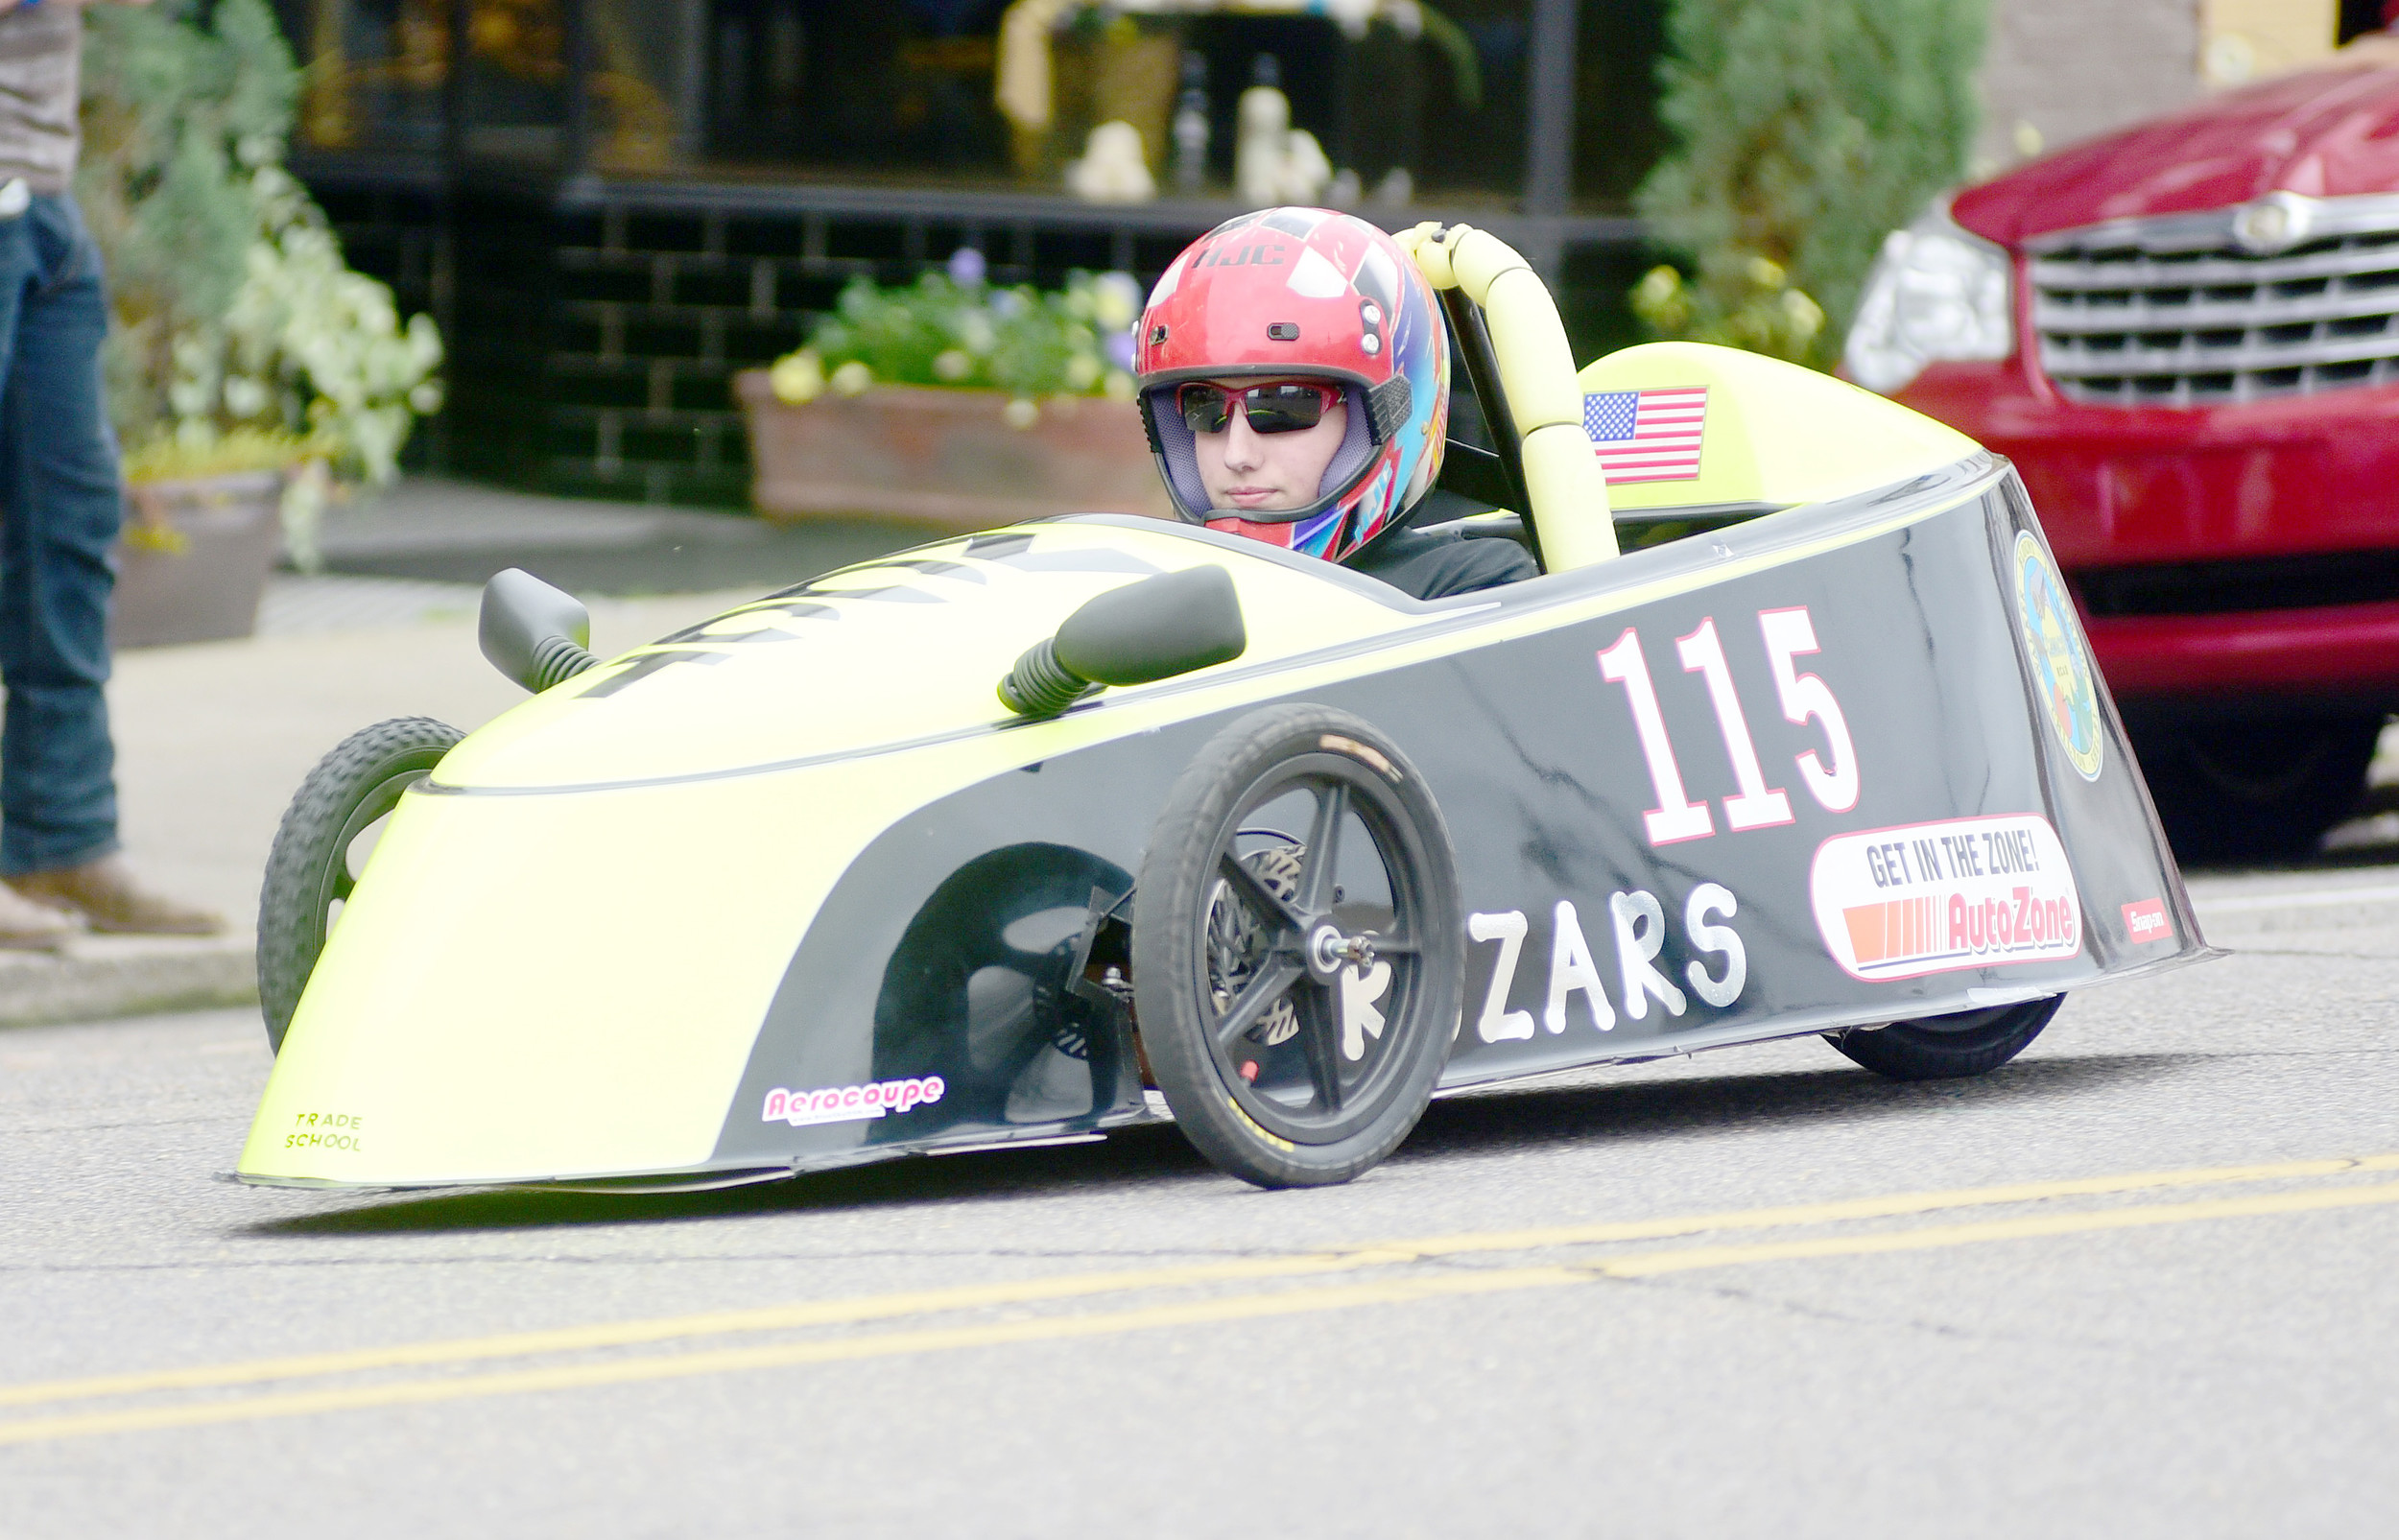 A  driver for the Walker County Center of Technology competes in last year's Electrathon Grand Prix in downtown Jasper. This year's race is set for Saturday and is expected to bring 13 teams from across the state in to compete. Daily Mountain Eagle - Ron Harris